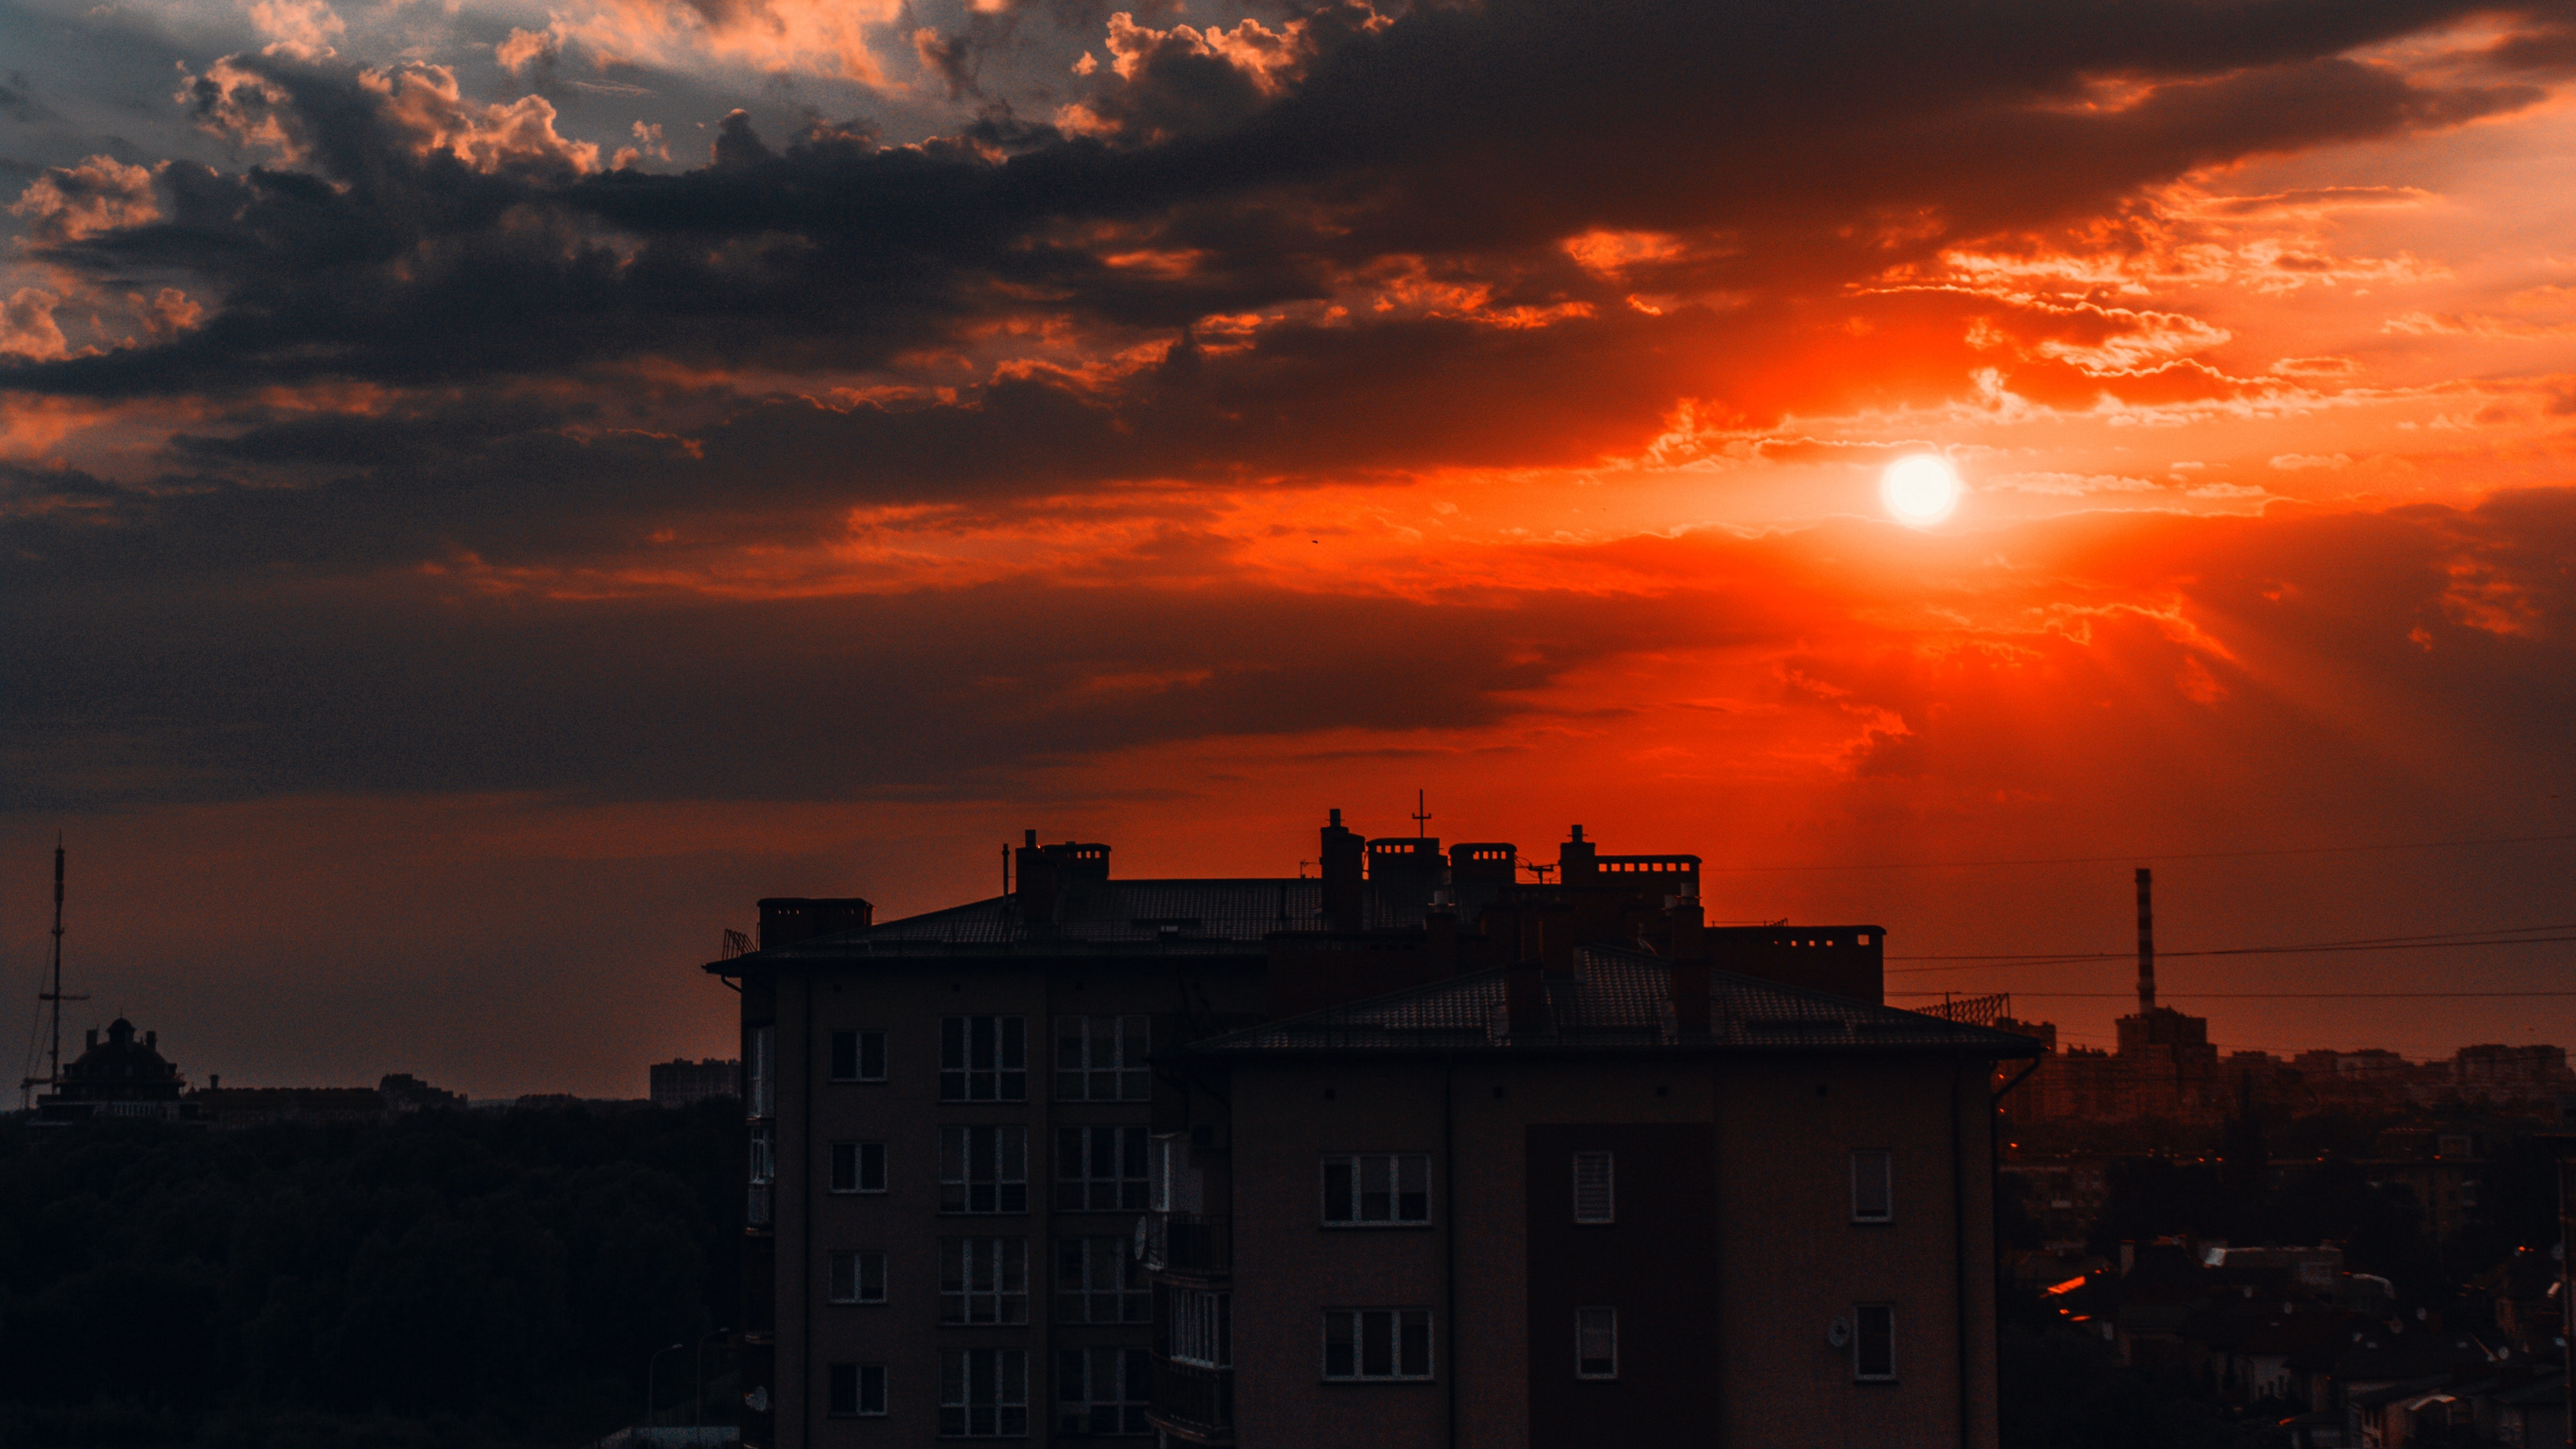 building sunset sky clouds architecture 4k 1538066680 - building, sunset, sky, clouds, architecture 4k - sunset, Sky, Building